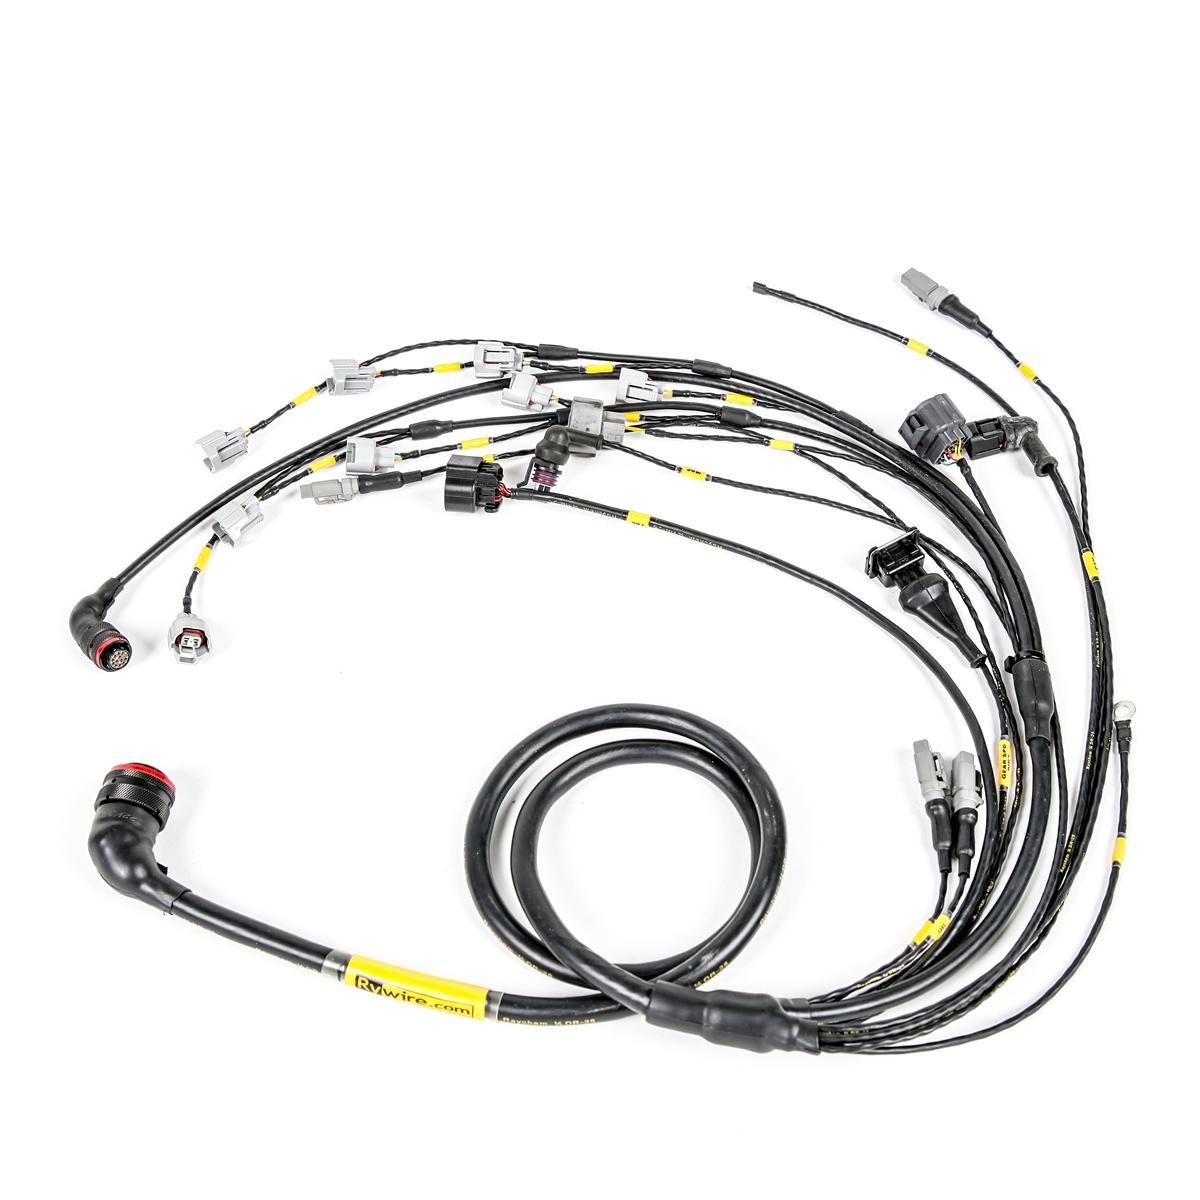 mil spec custom harness 5?1426680579 rywire com mil spec custom engine harness mil spec wiring harness at aneh.co